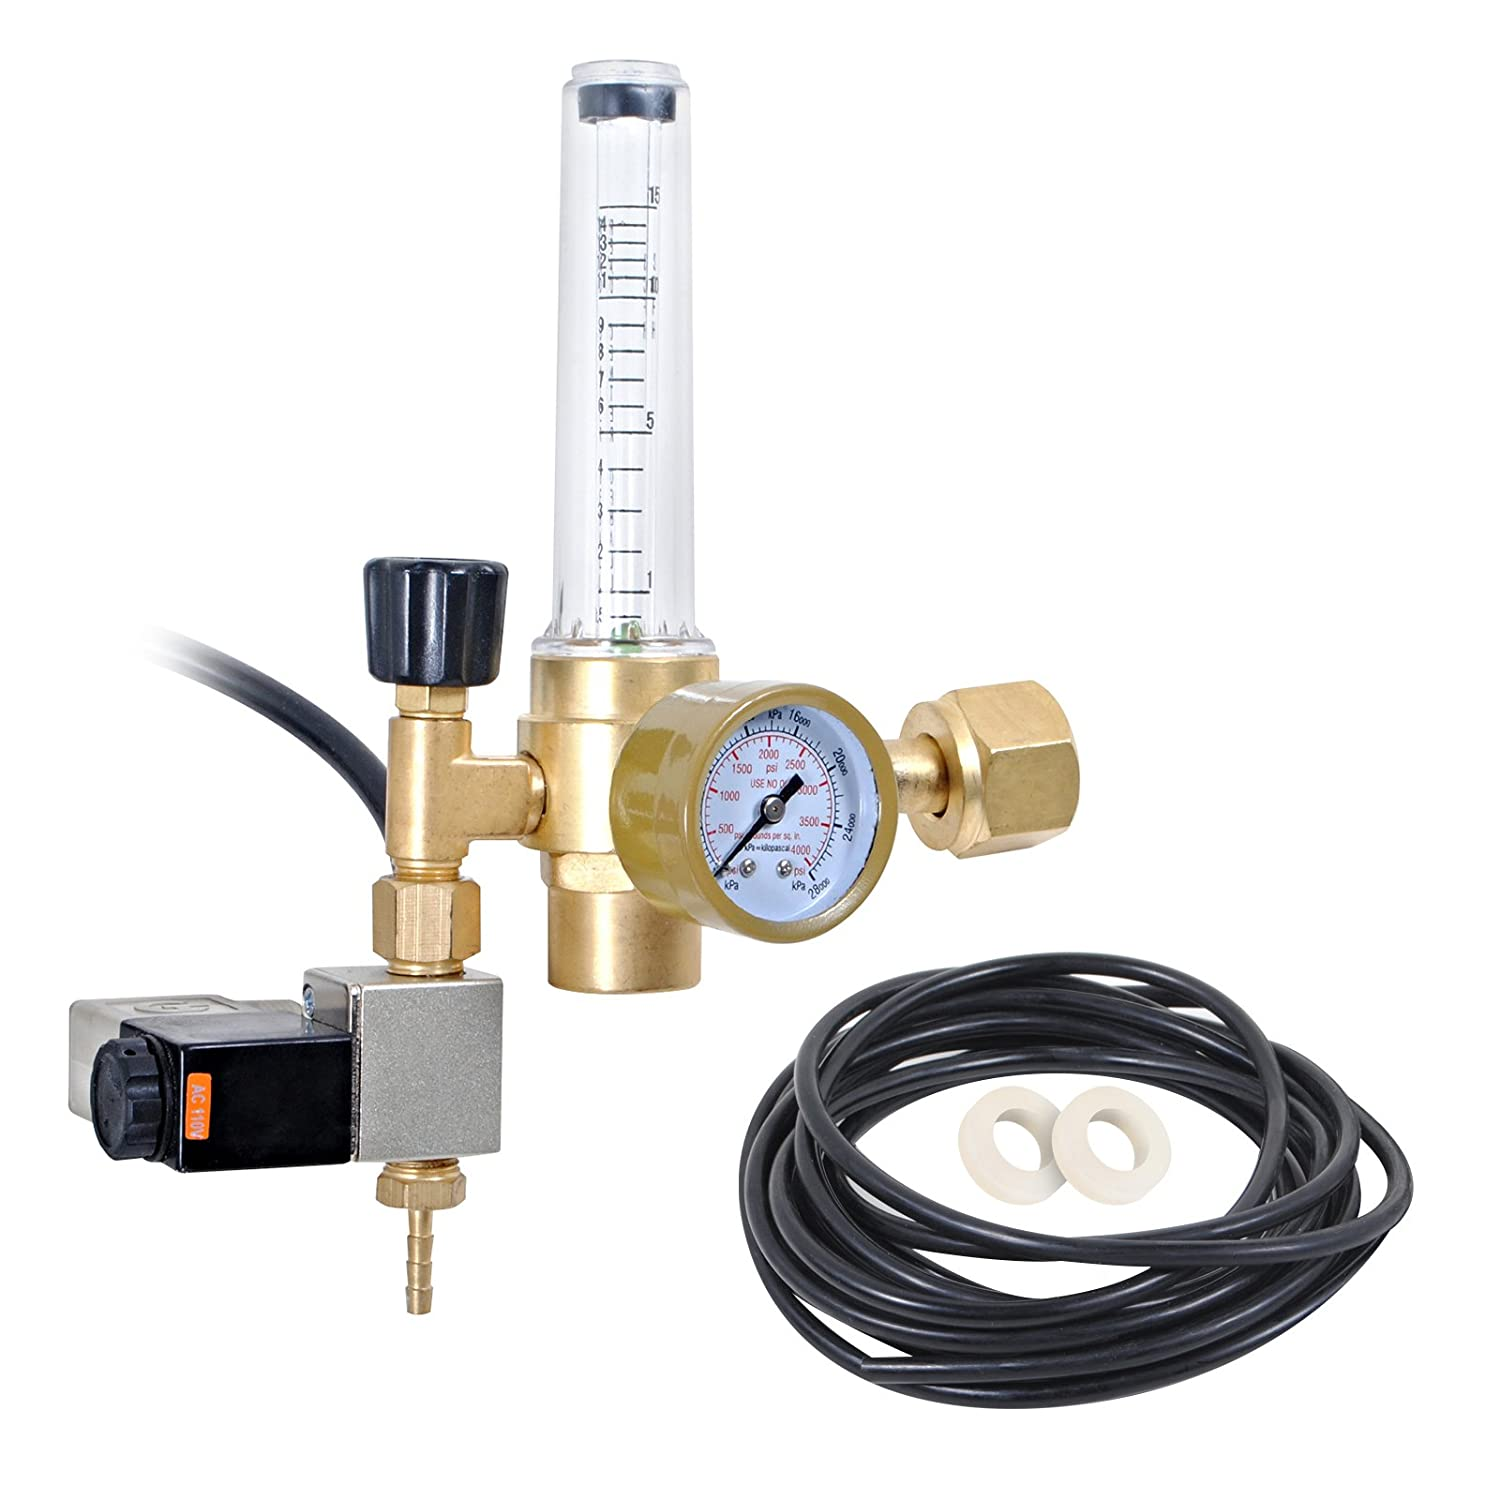 2 Inch Pool Flow Meter Home Depot Insured By Ross